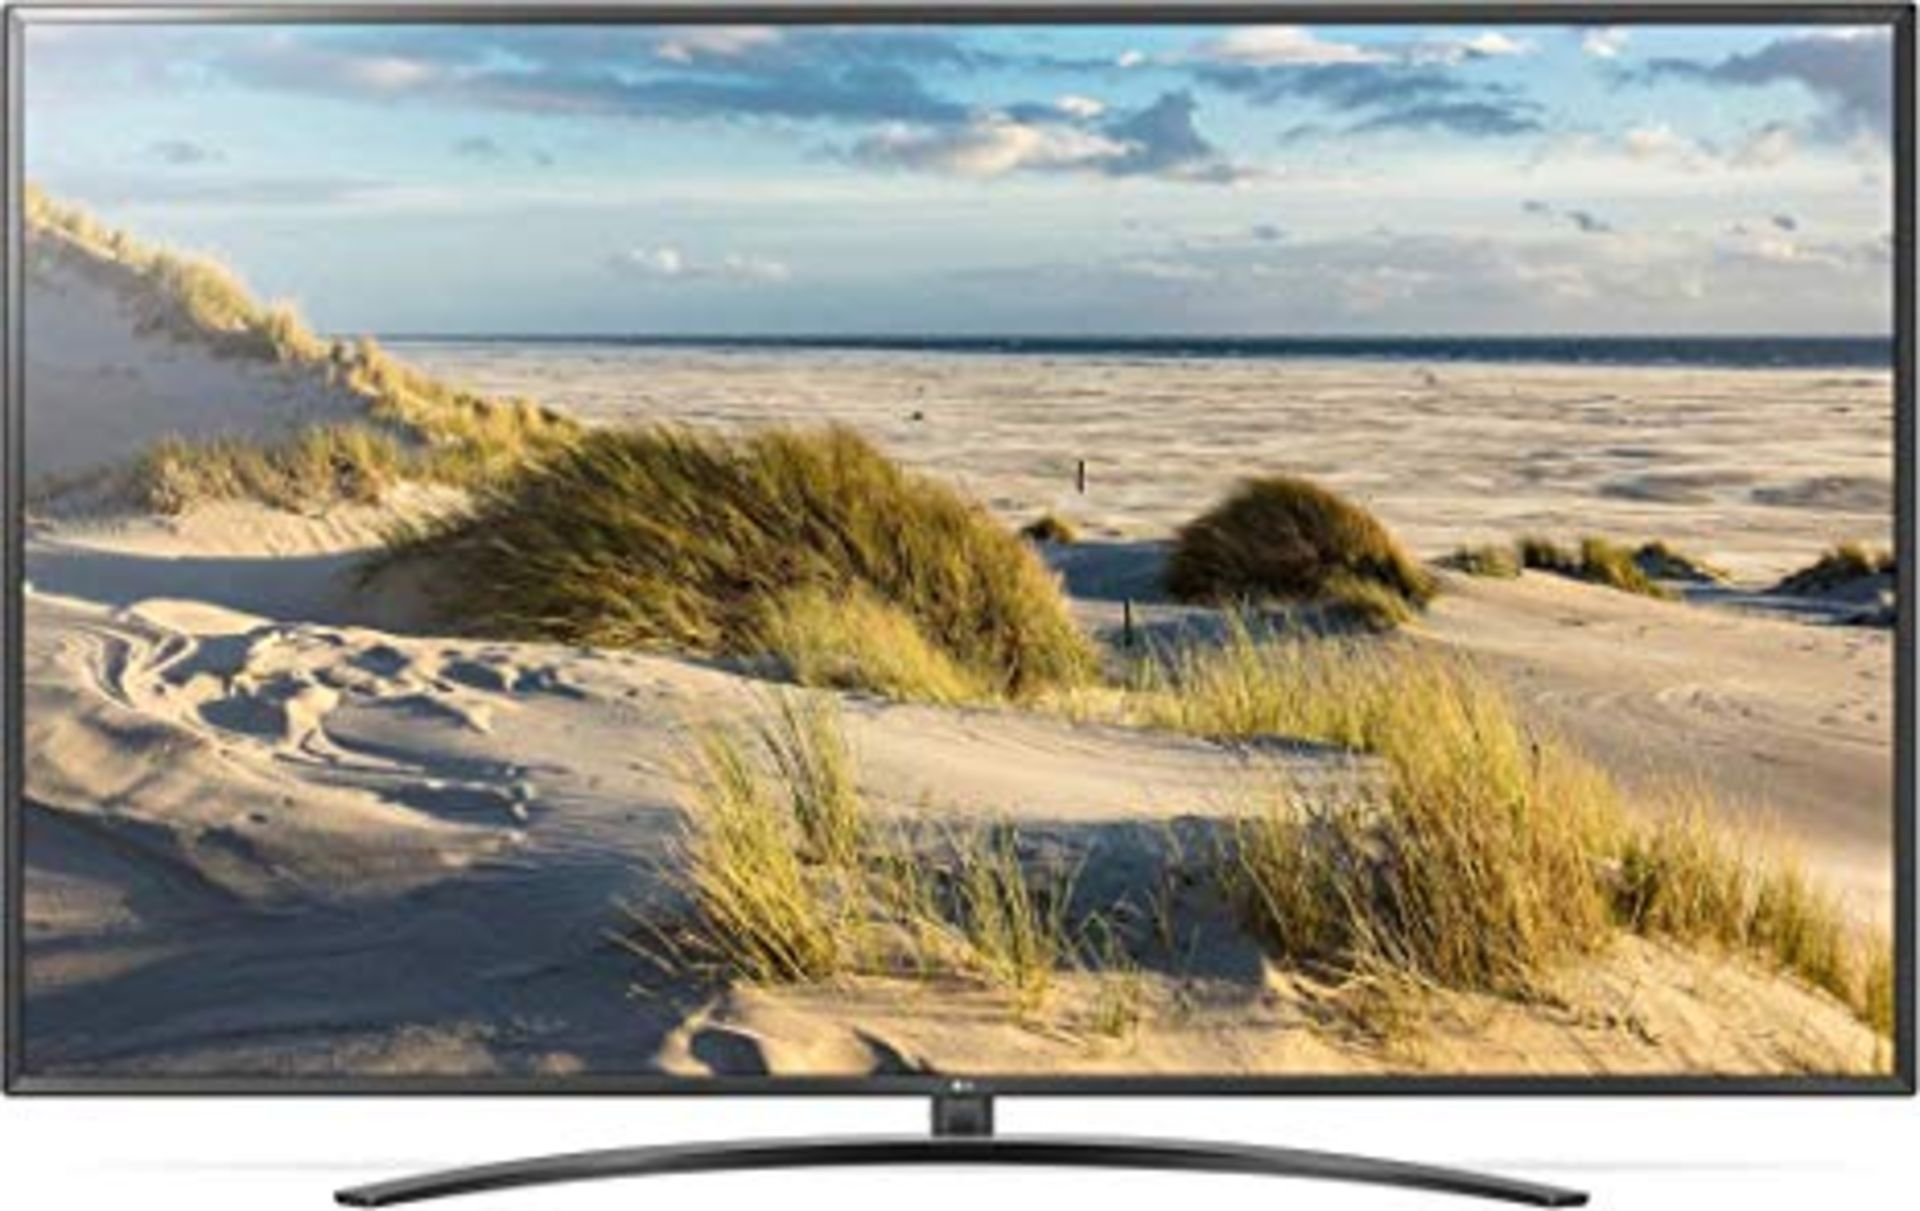 Lot 16046 - V Grade A LG 75 Inch ACTIVE HDR 4K ULTRA HD LED SMART TV WITH FREEVIEW HD & WEBOS & WIFI - AI TV